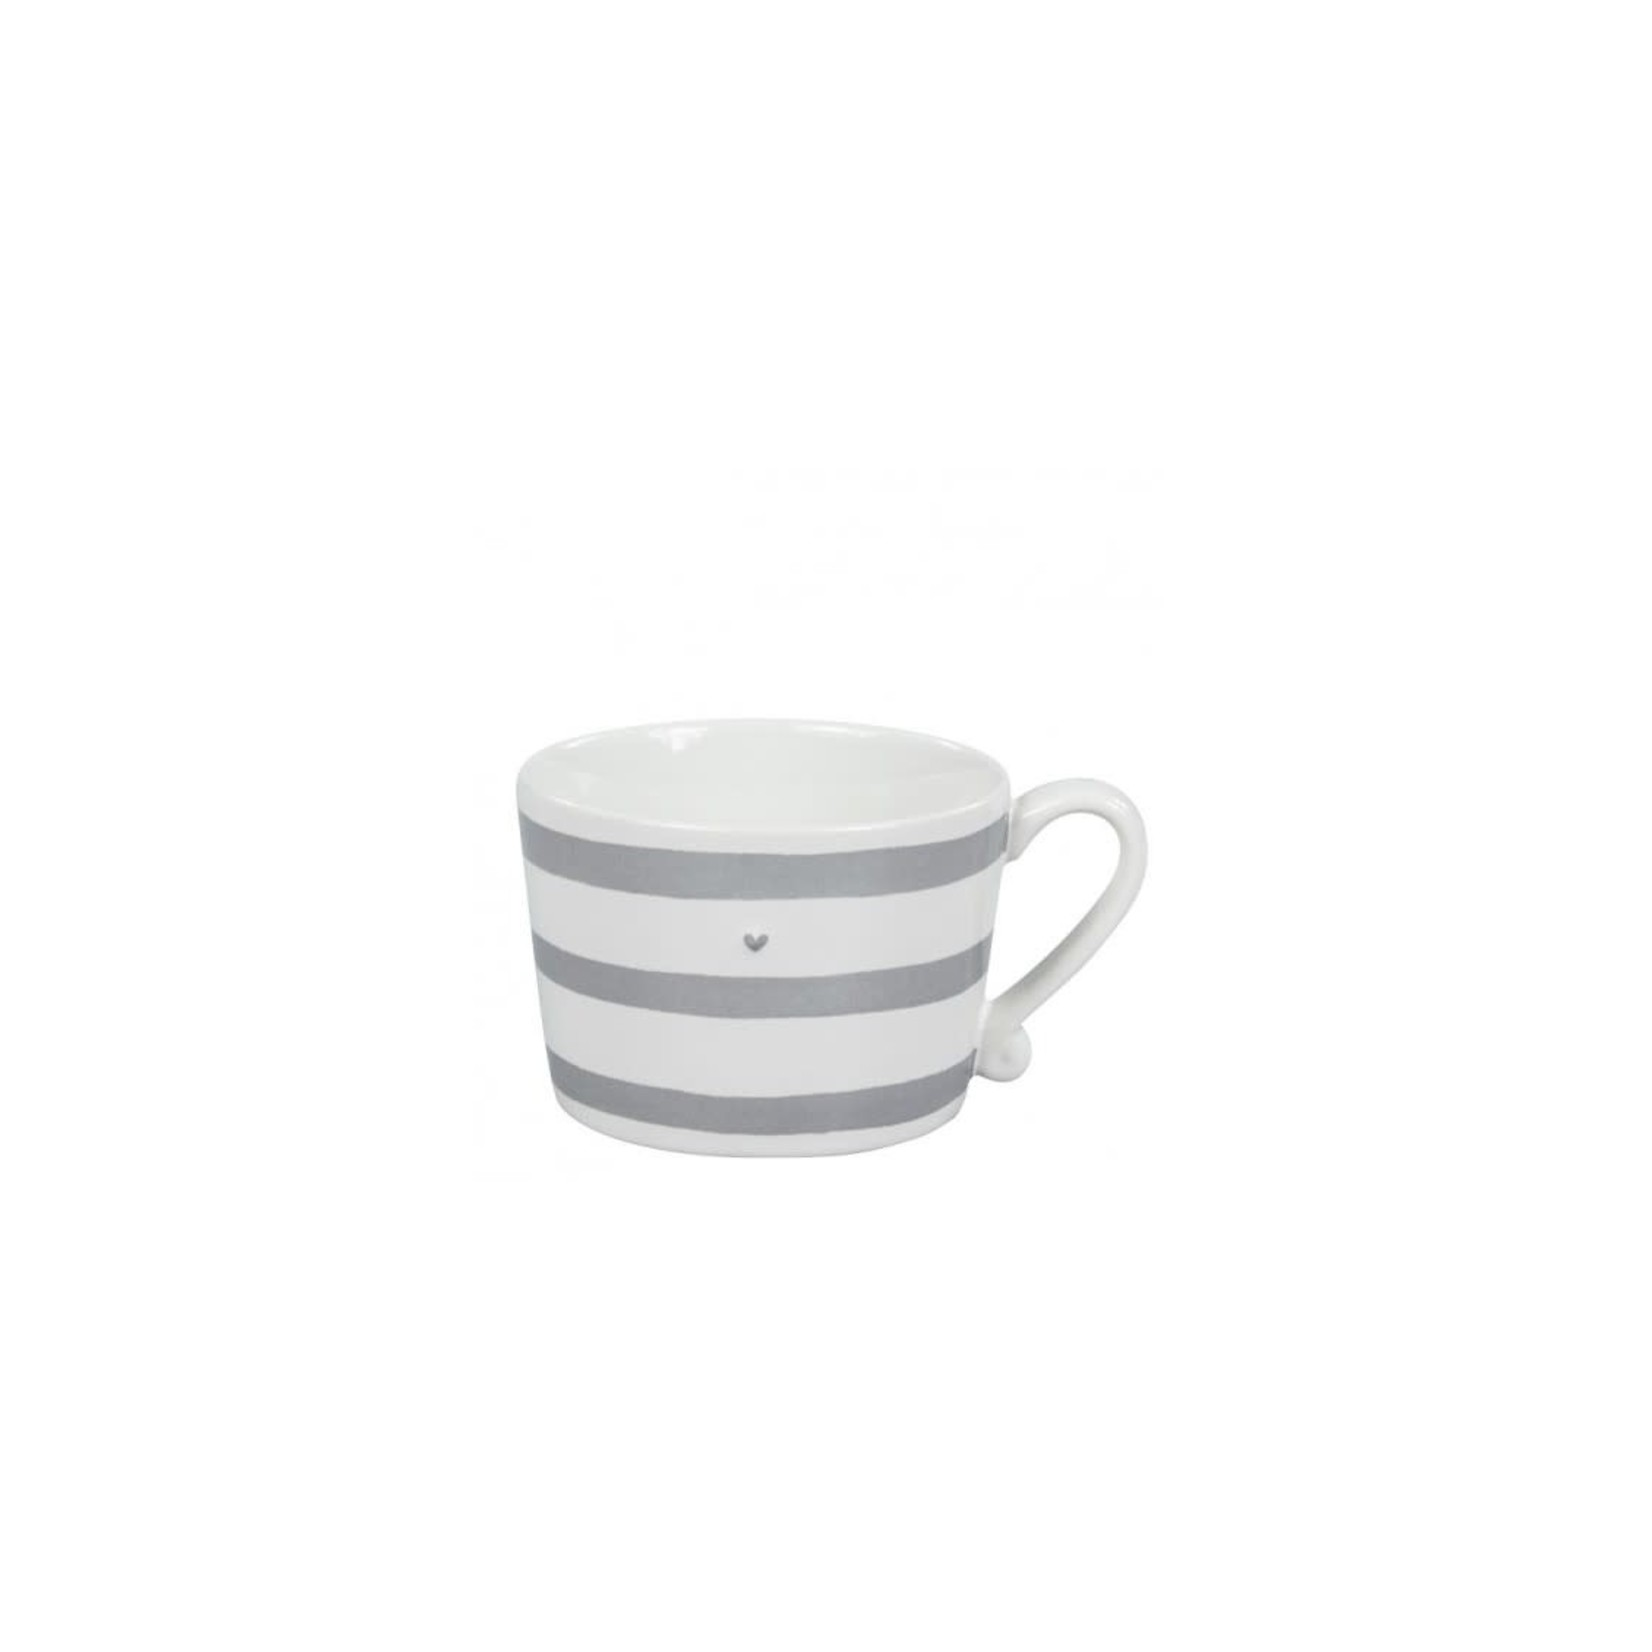 Bastion Collections Mug large White Heart Stripes in Grey